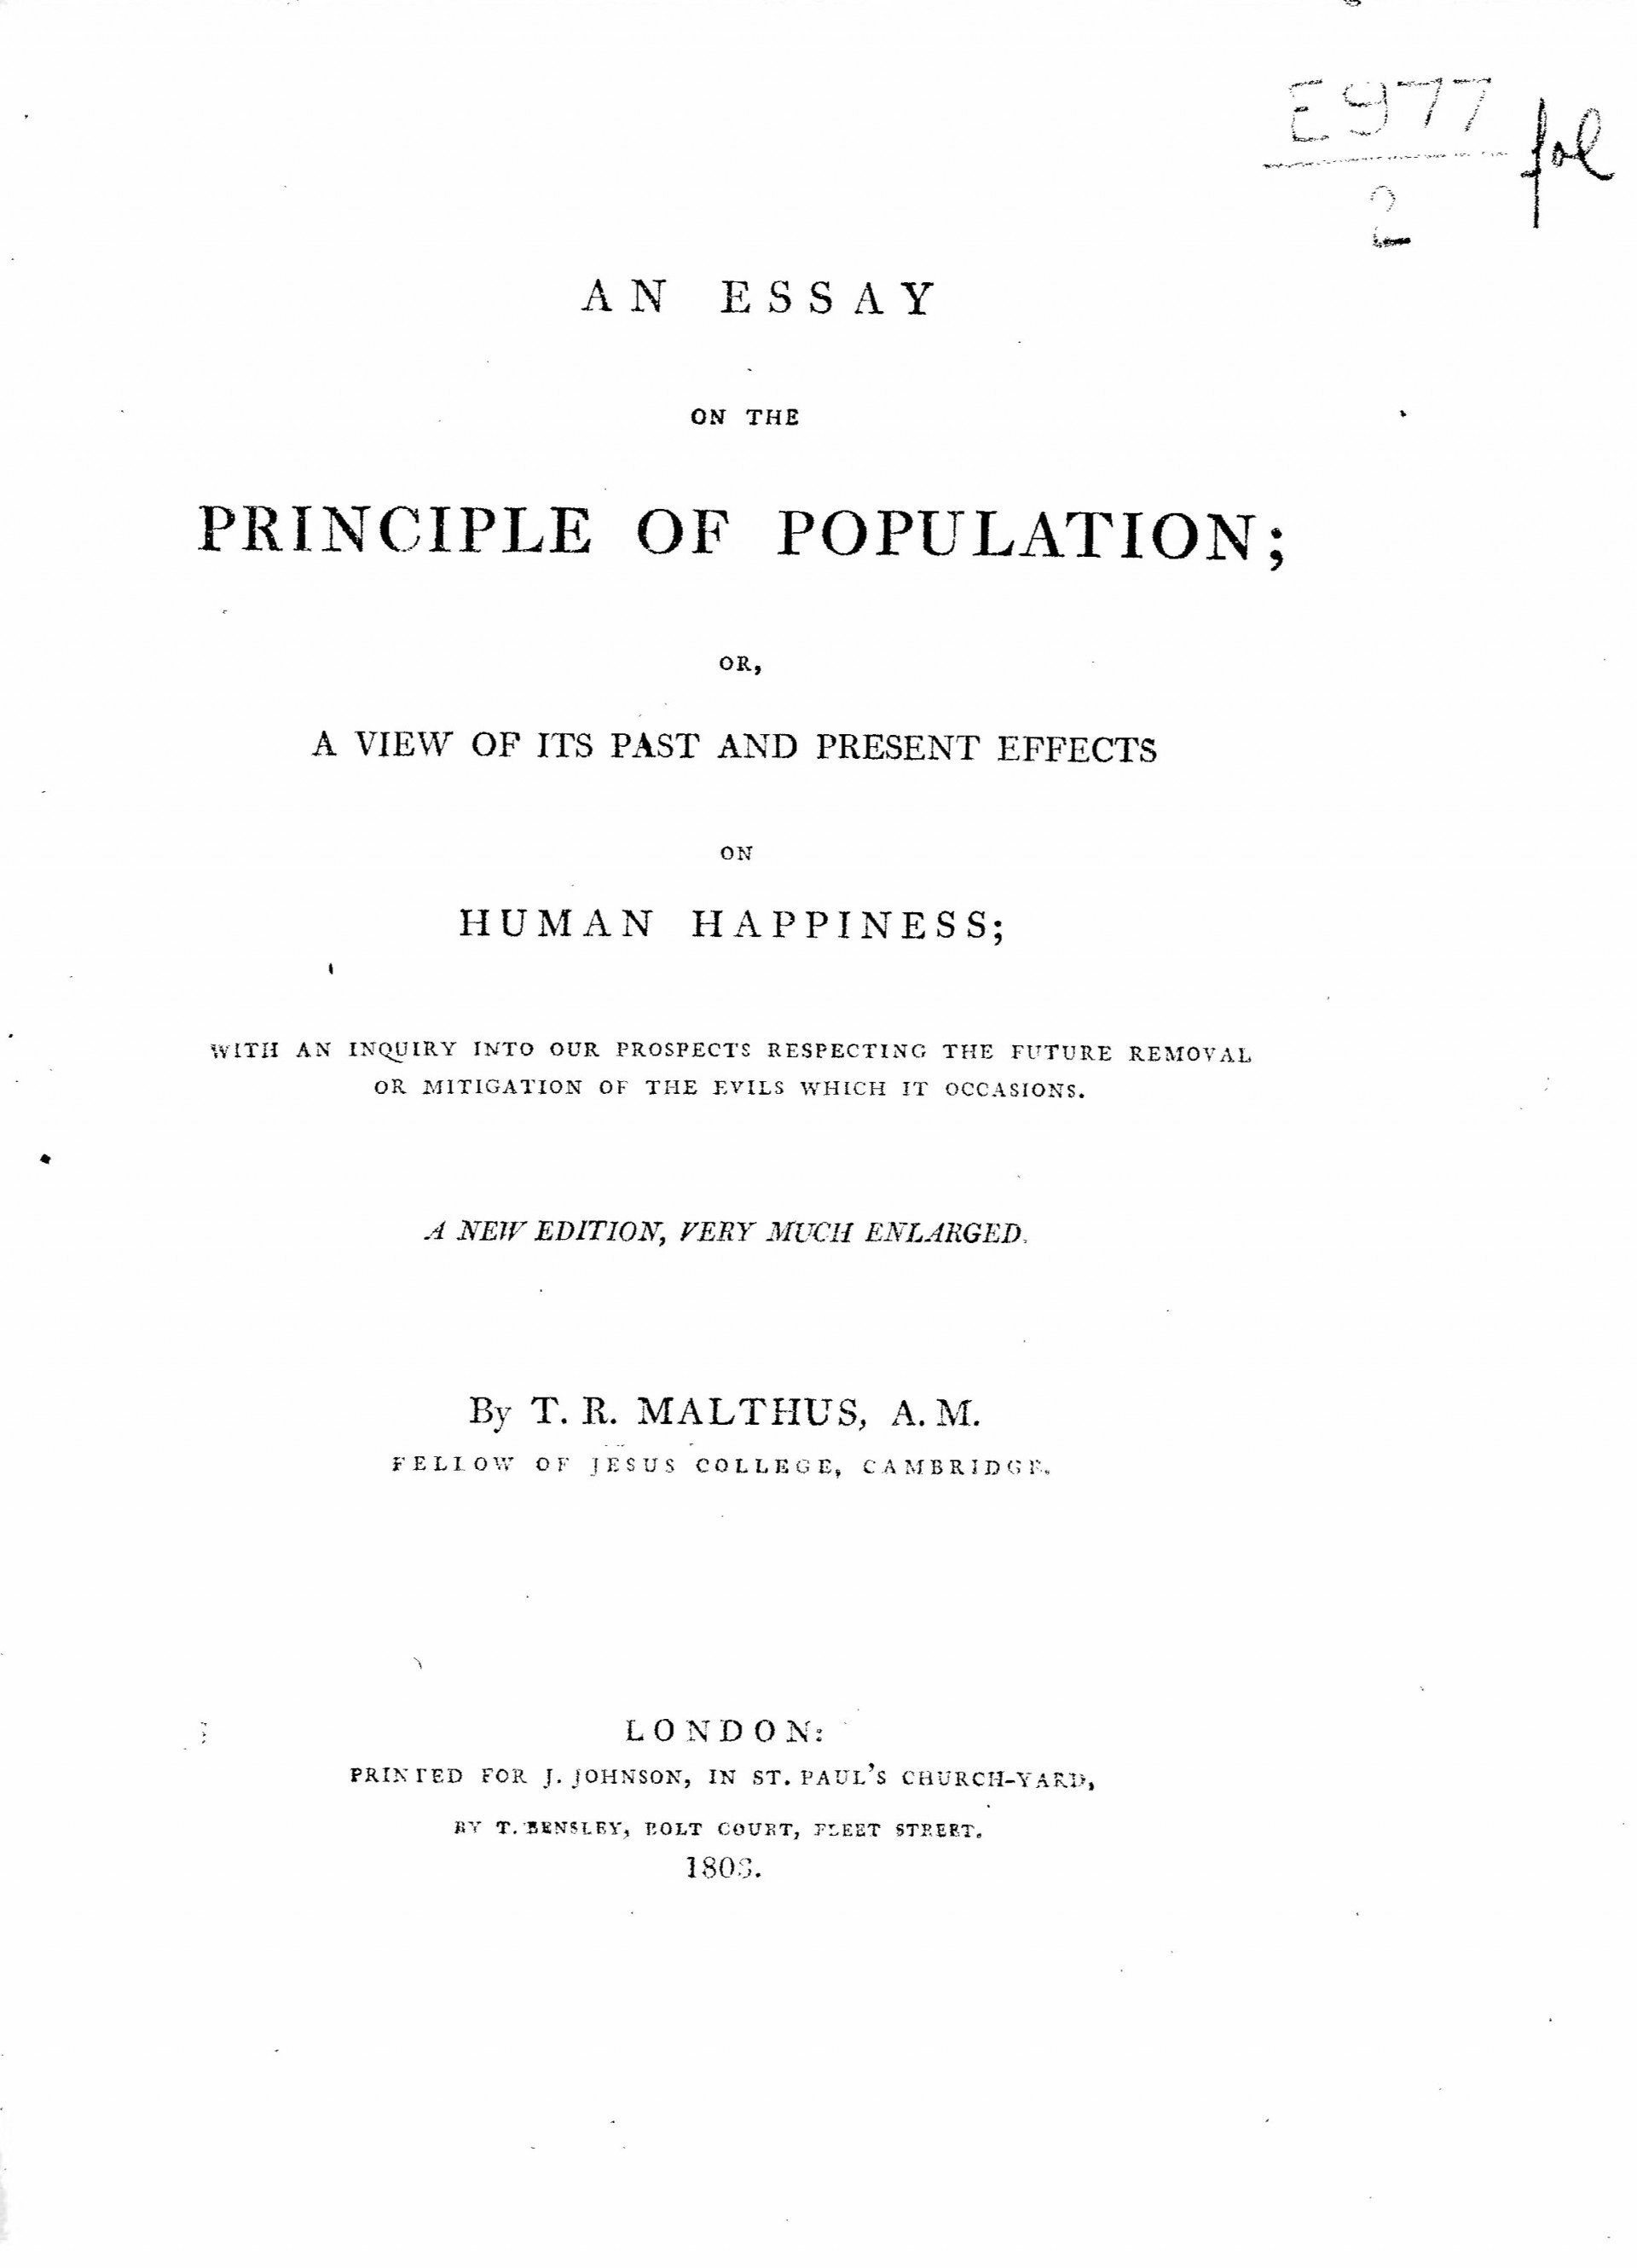 003 Thomas Malthus An Essay On The Principle Of Population 2fol Marvelous Summary Analysis Argued In His (1798) That 1920